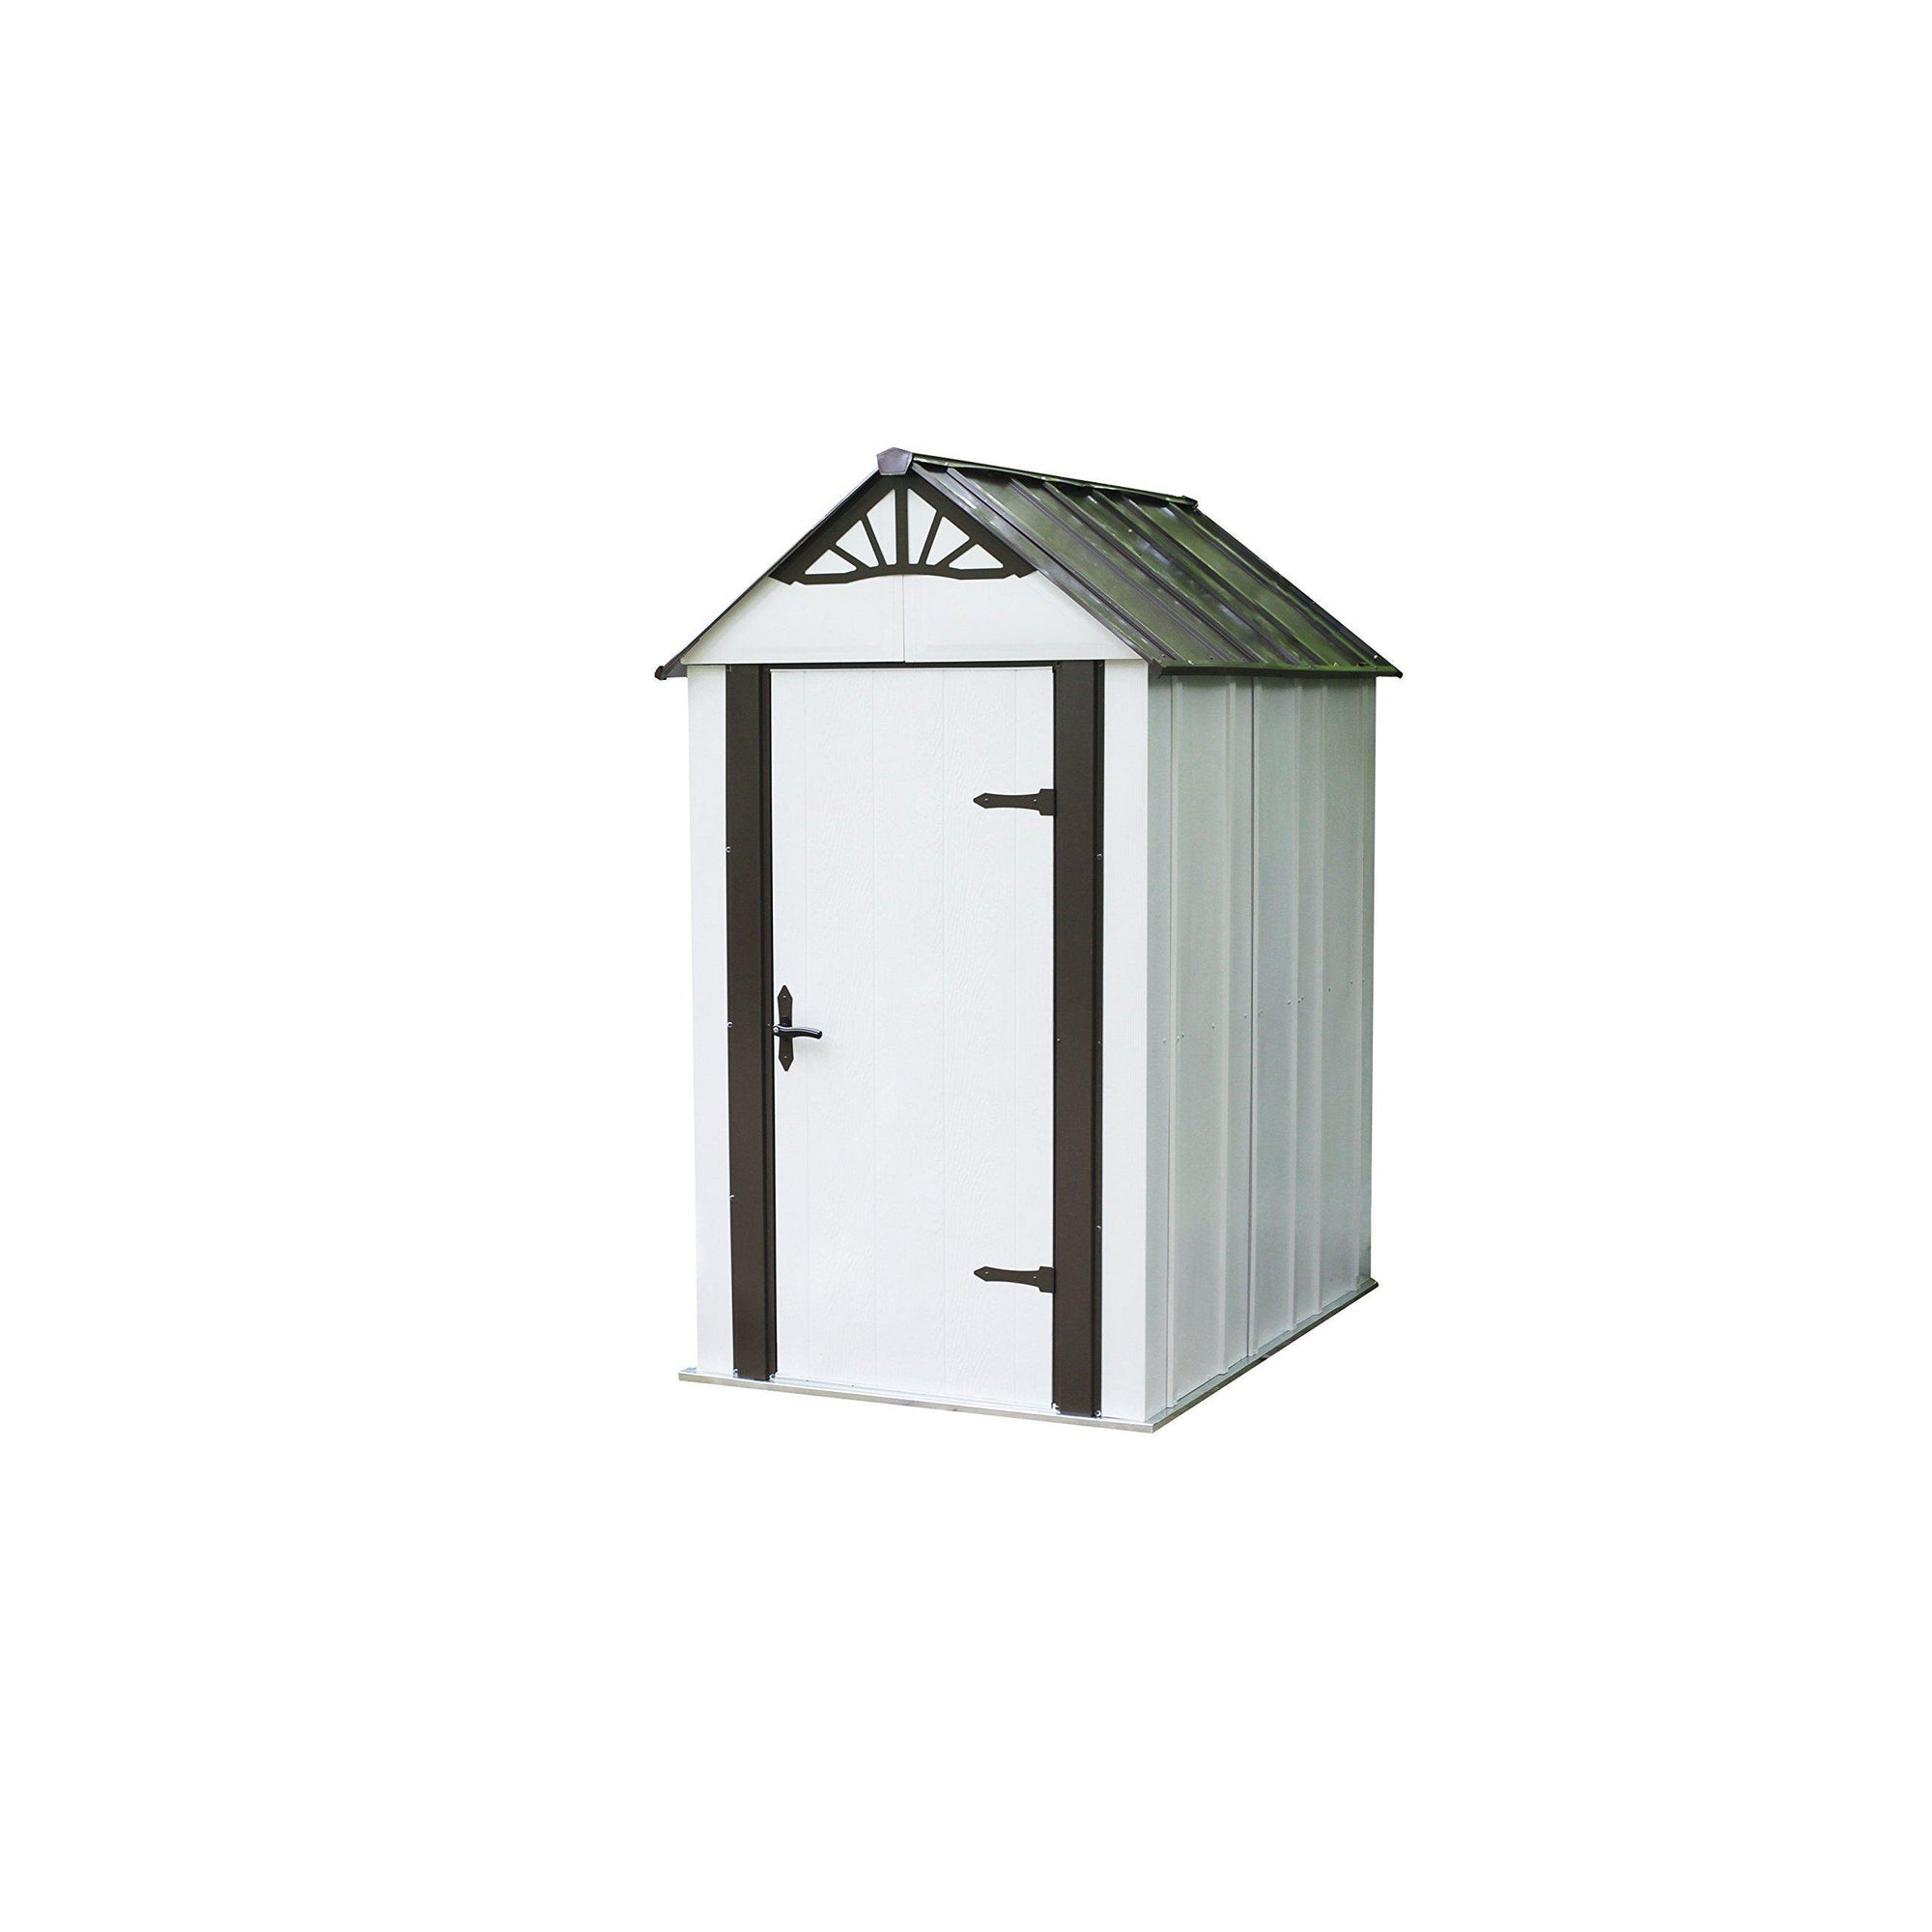 Arrow Designer Metro Shed, Java/Sand, 4 x 6 ft.